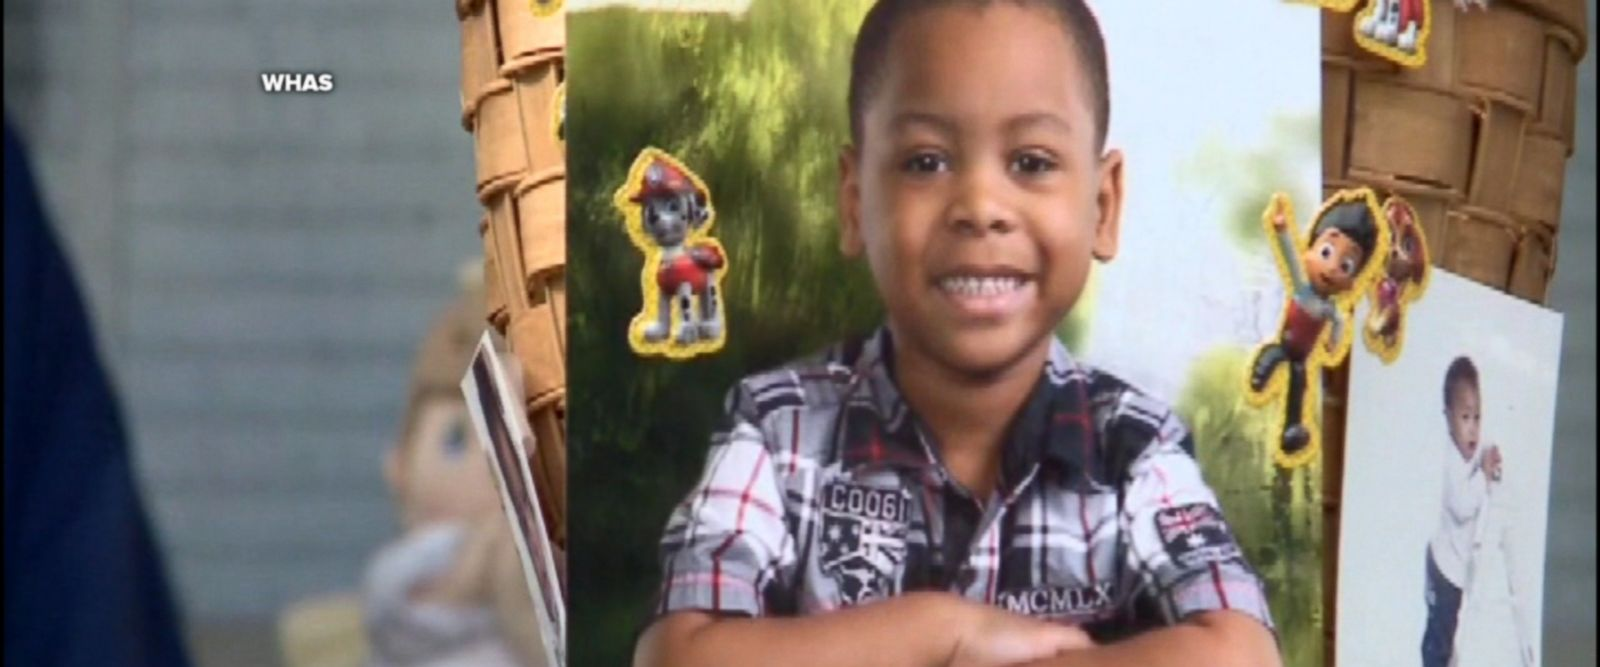 Tears rolled down the faces of many on Tuesday night, as a prayer vigil honored seven-year-old Dequante Hobbs, Jr., who was killed by a stray bullet on Sunday.